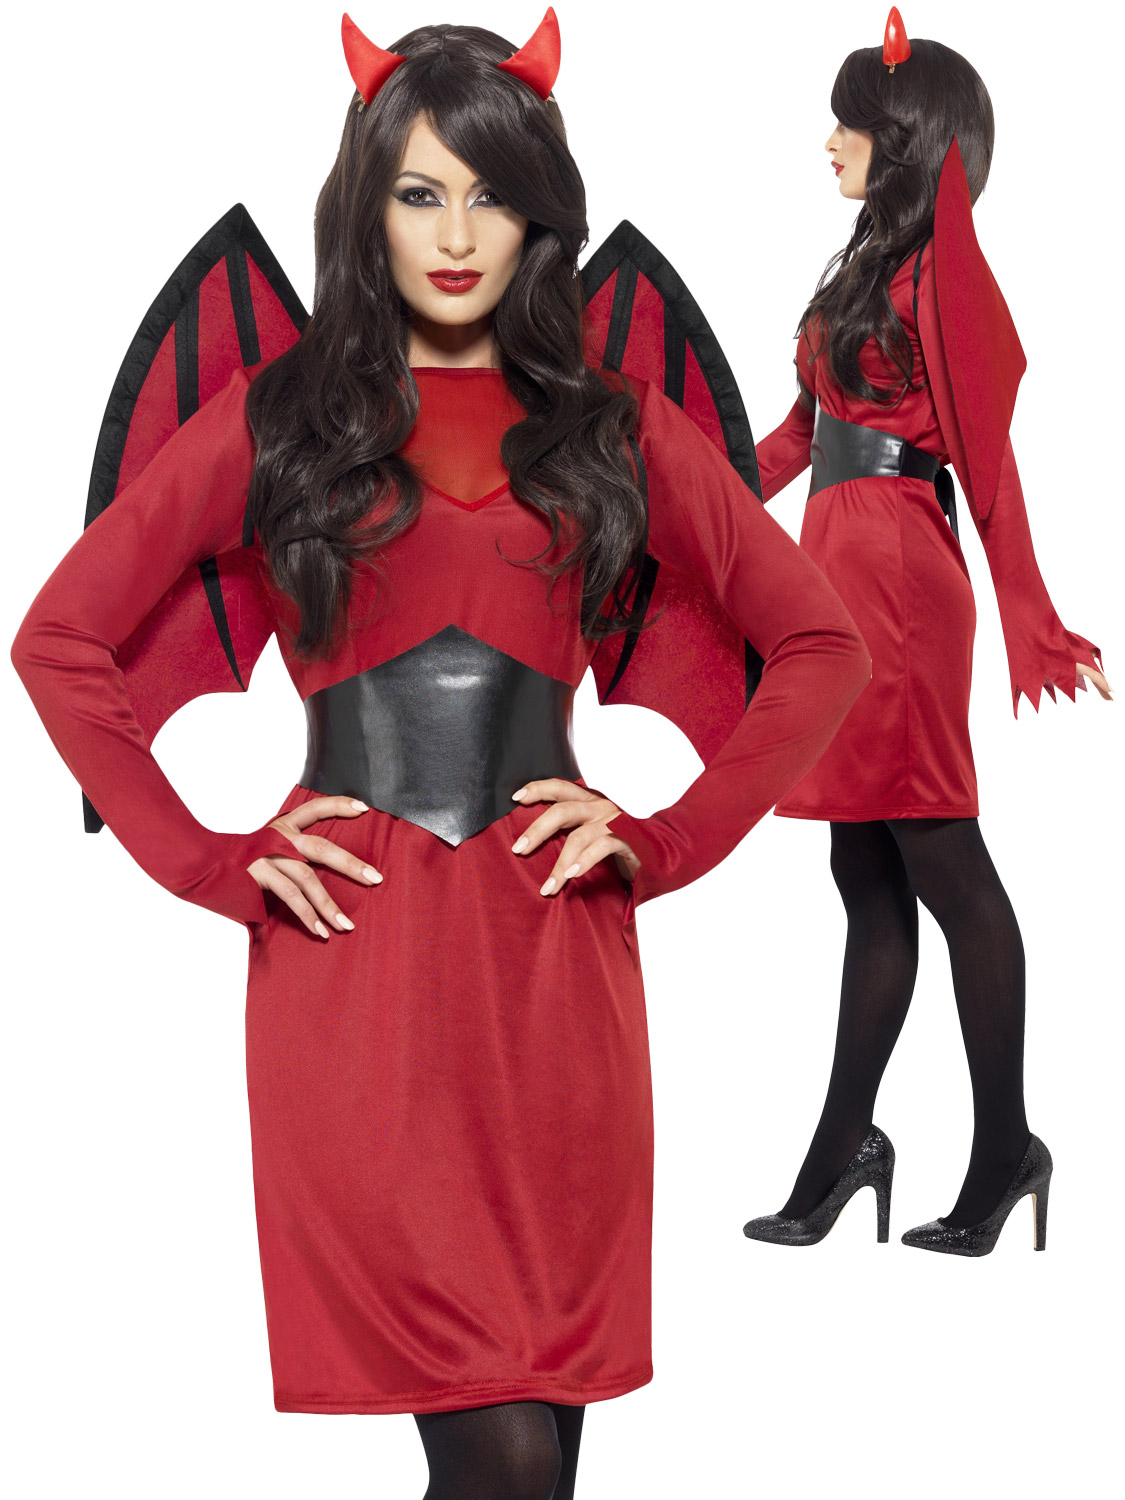 Ladies economy devil costume women halloween fancy dress adult sexy transform yourself into a sexy devil with this ladies economy devil costume ideal if you are going to a halloween fancy dress party solutioingenieria Images